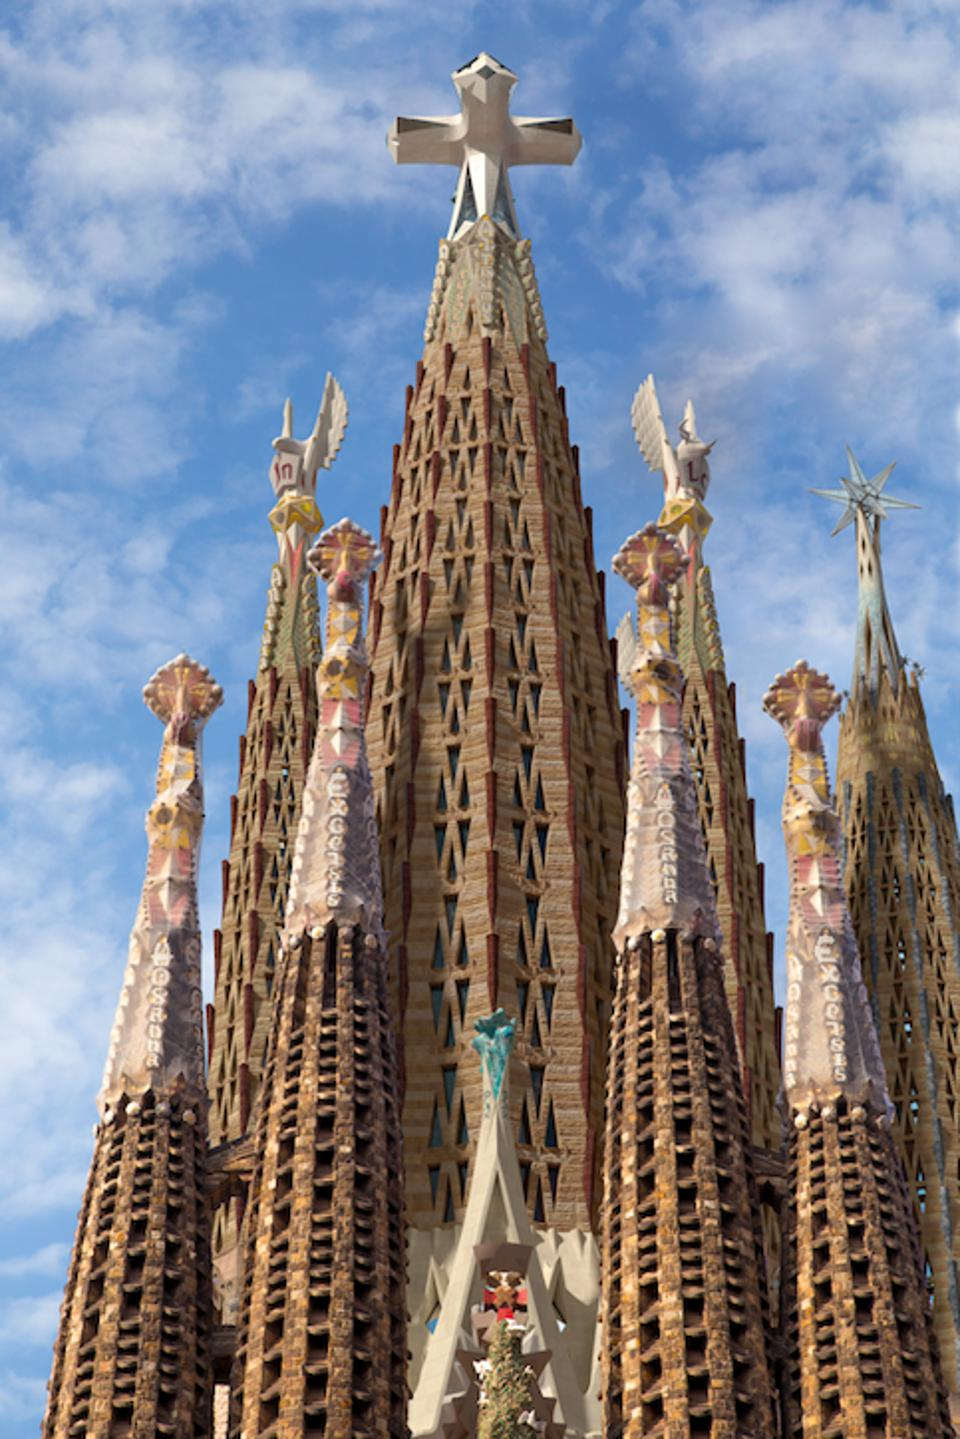 Central towers of La Sagrada Família temple in Barcelona